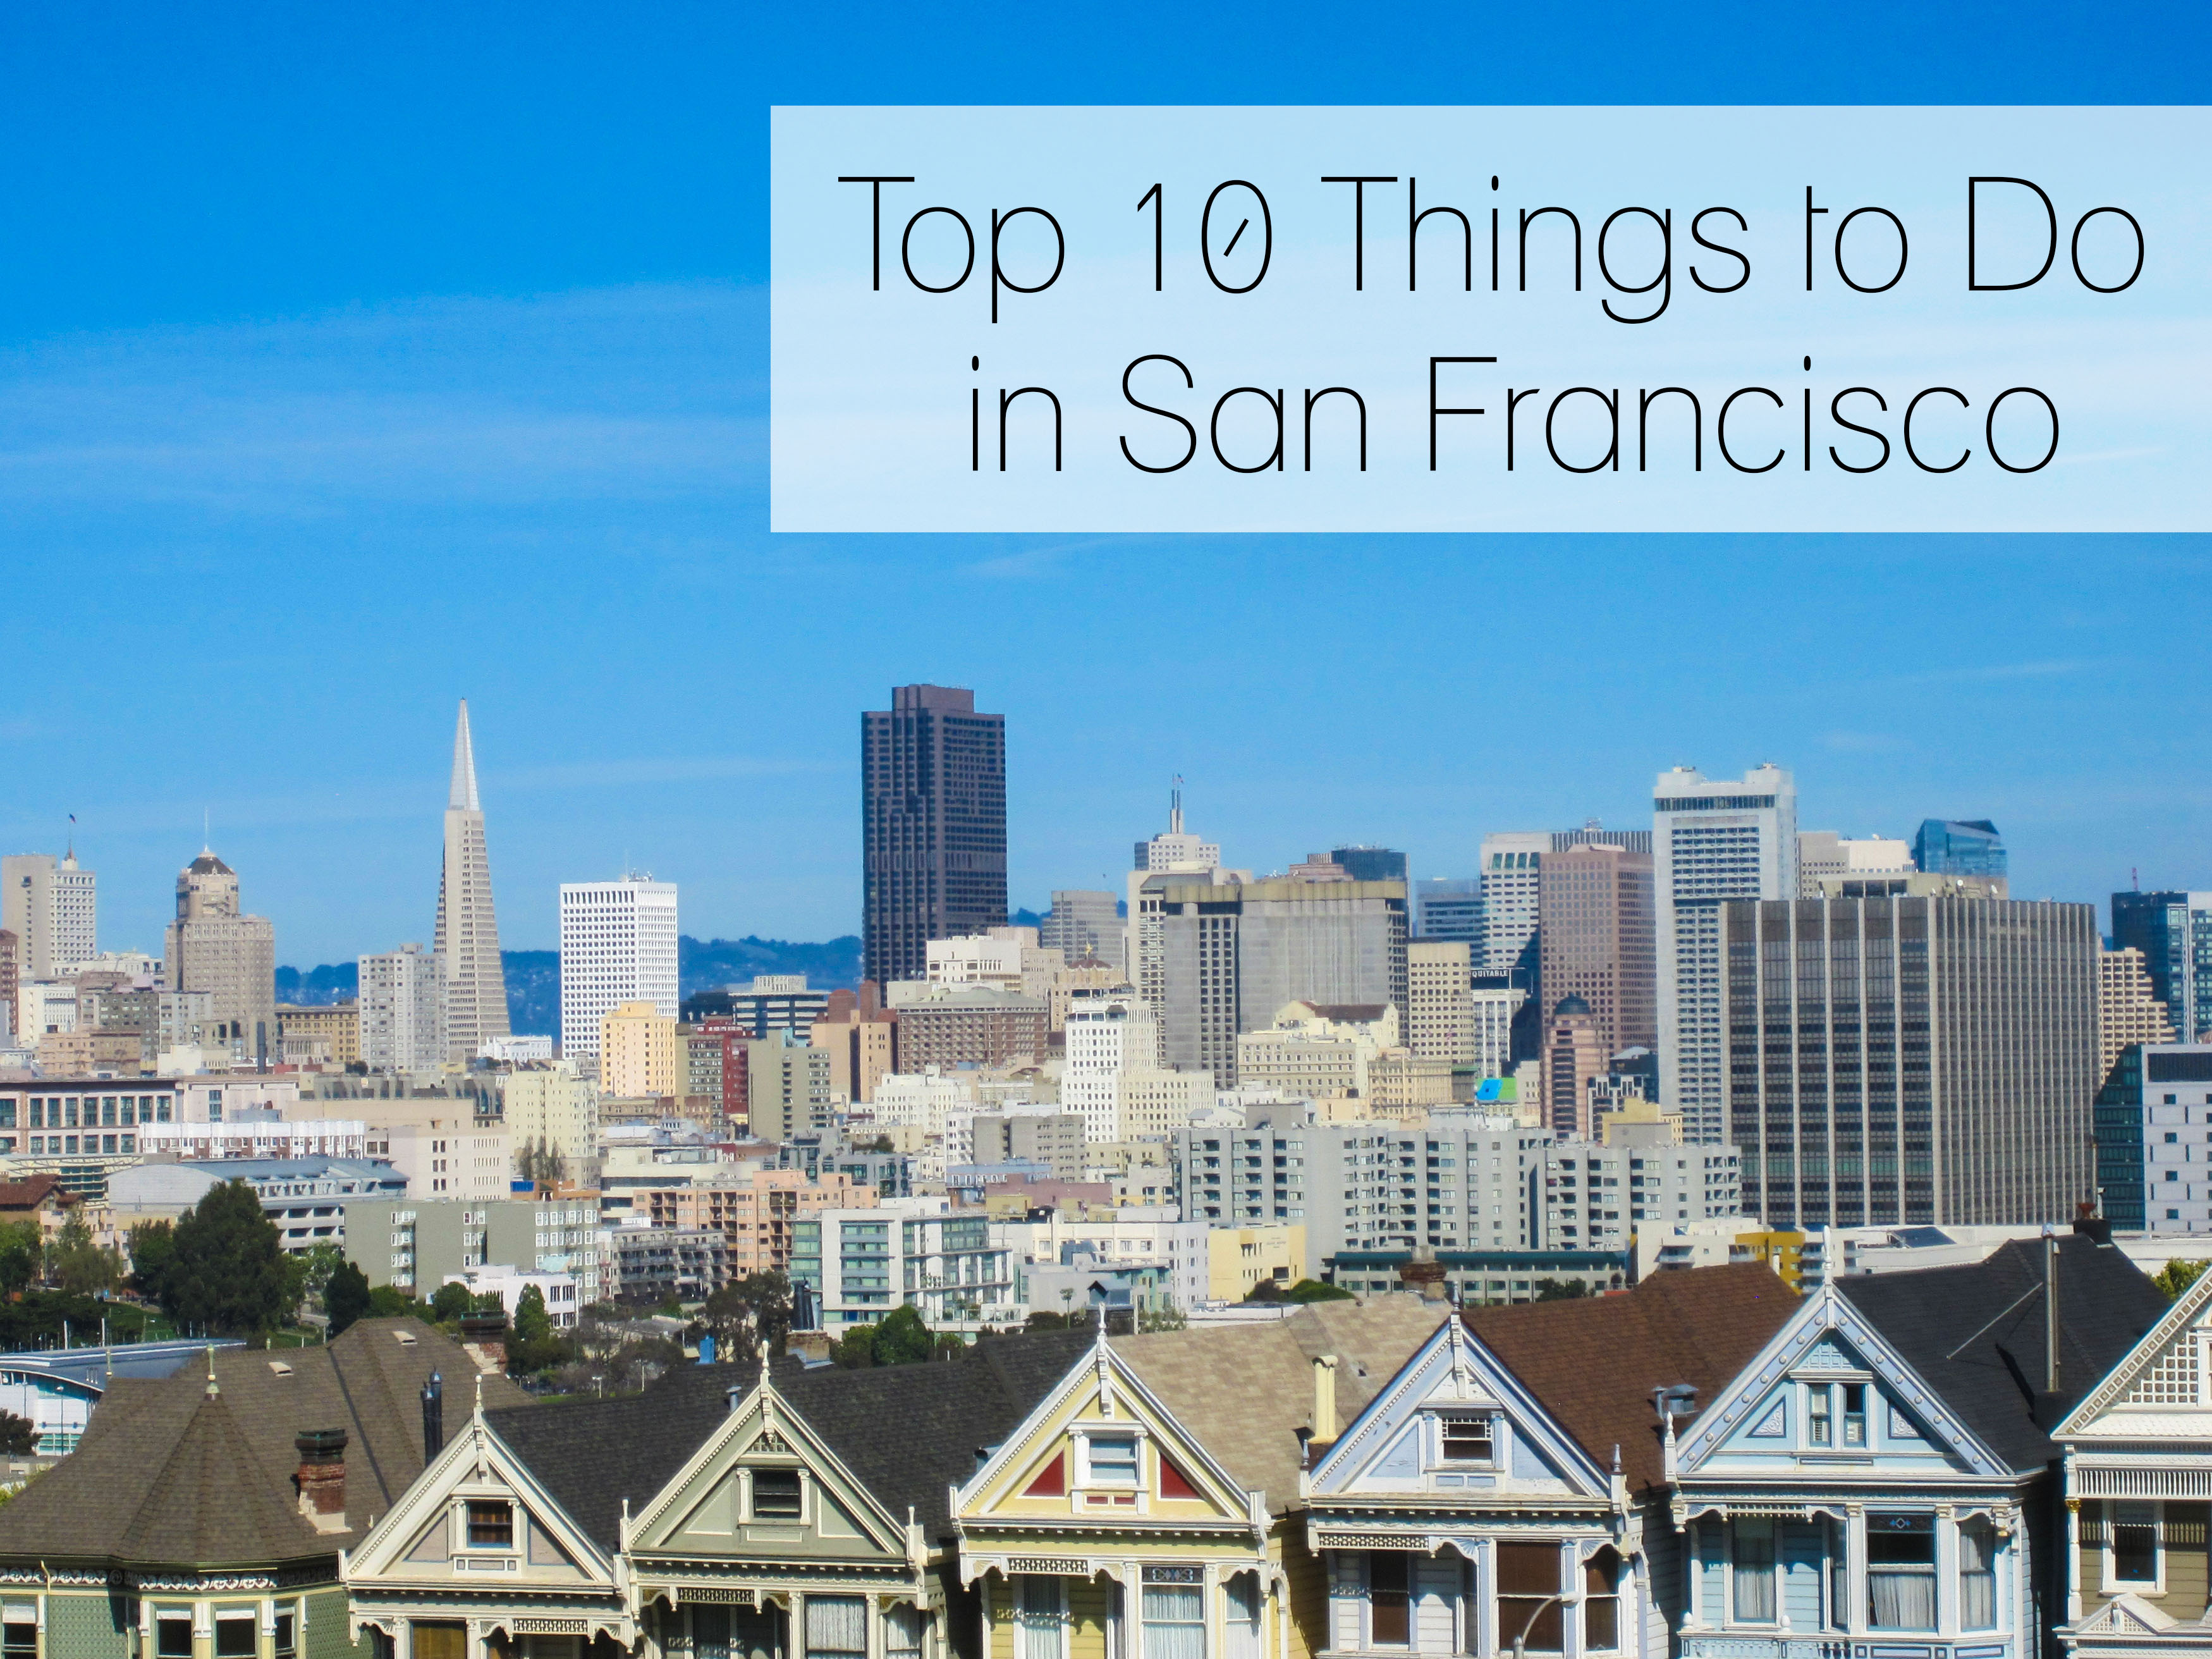 Top Things To Do San Francisco California - 10 things to see and do in california